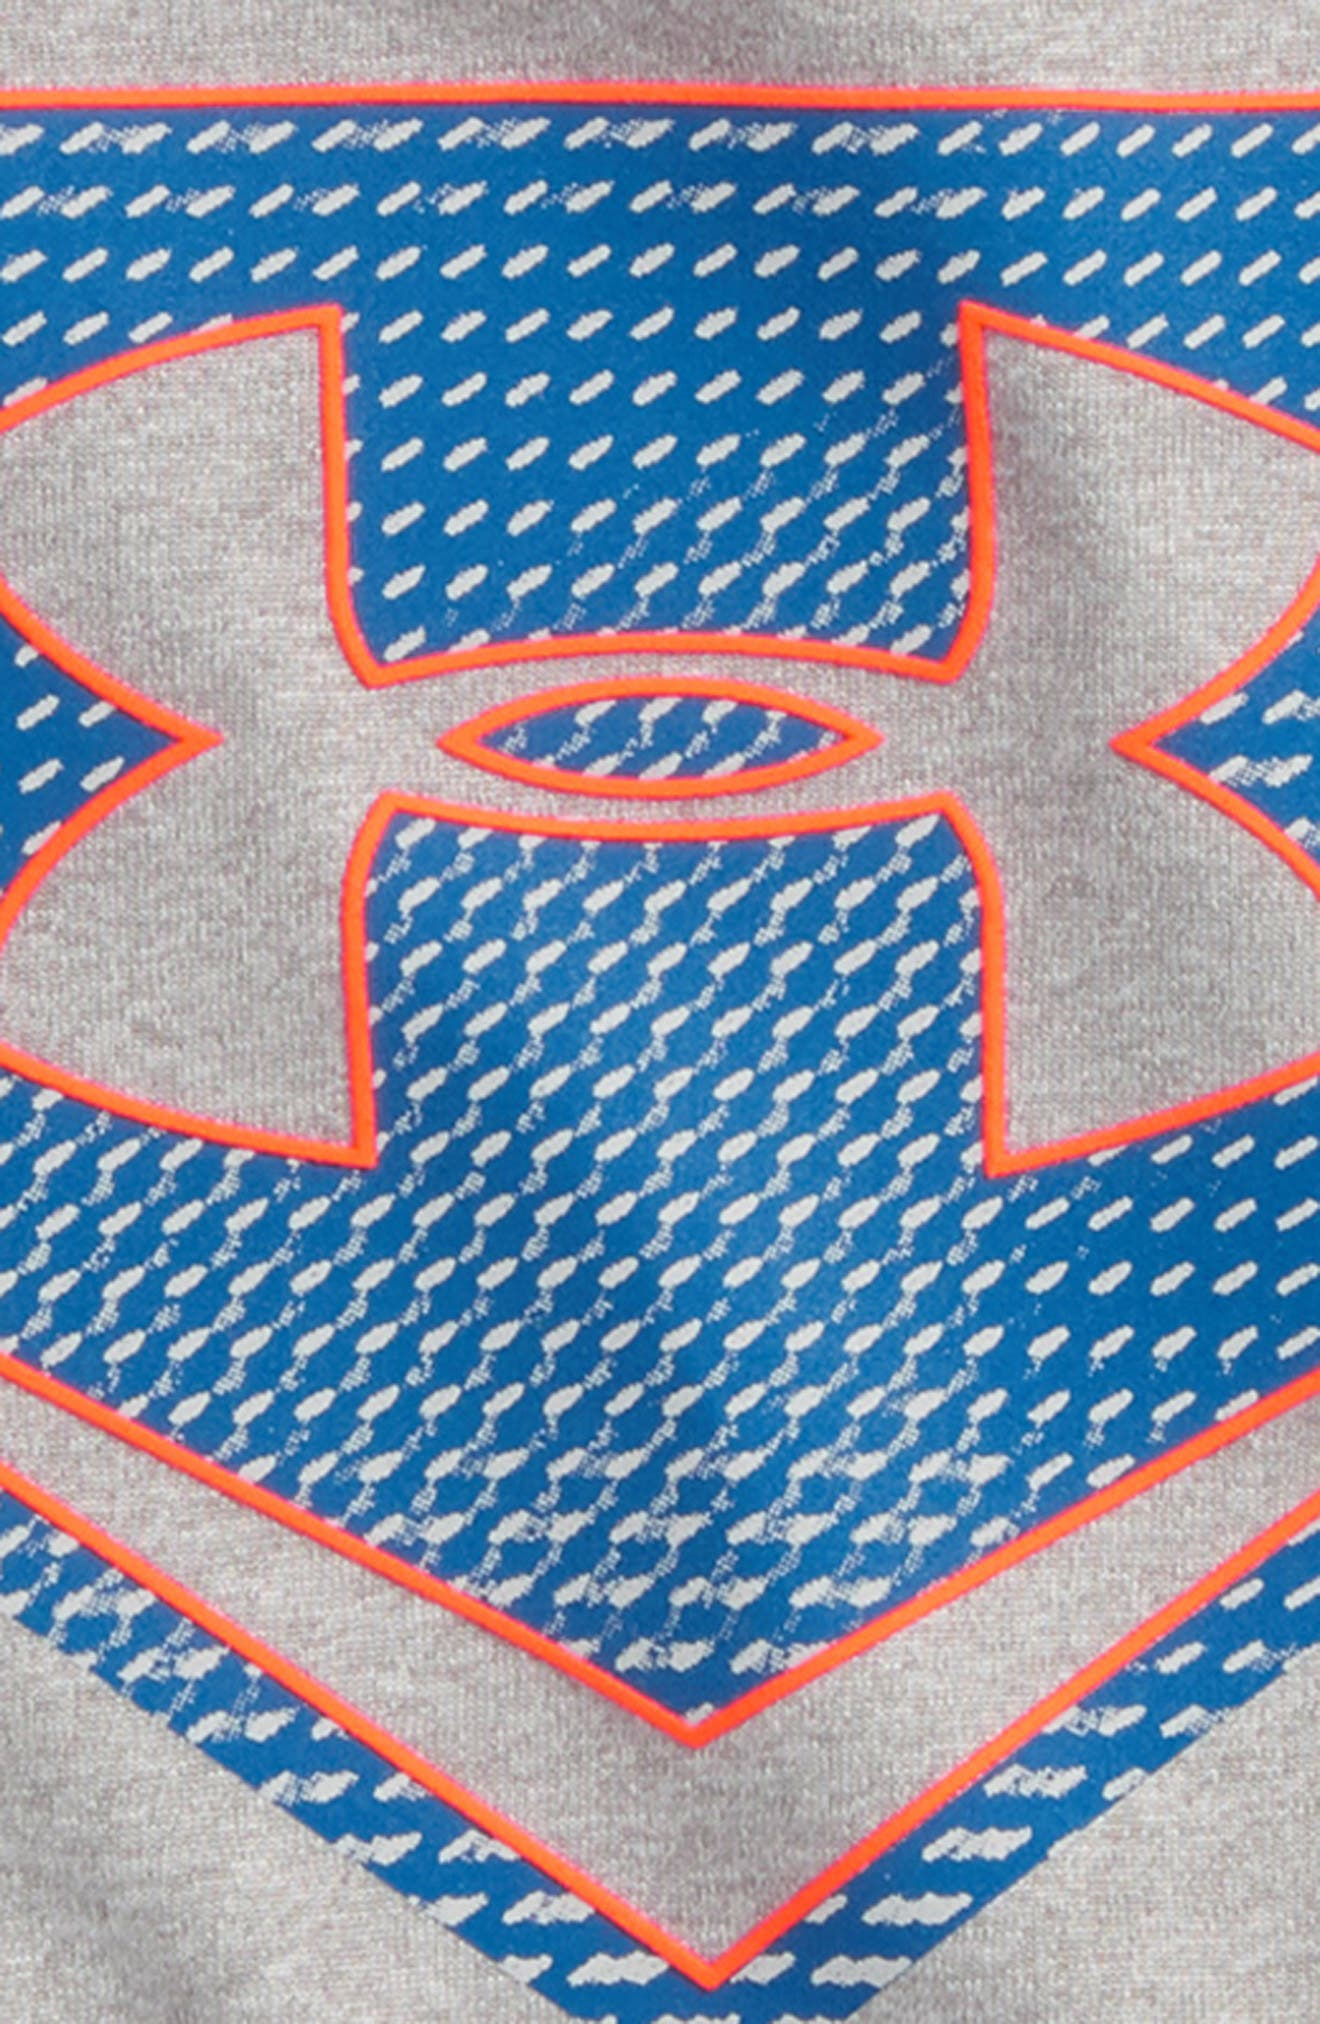 Sync Home Plate Logo HeatGear<sup>®</sup> T-Shirt,                             Alternate thumbnail 2, color,                             022